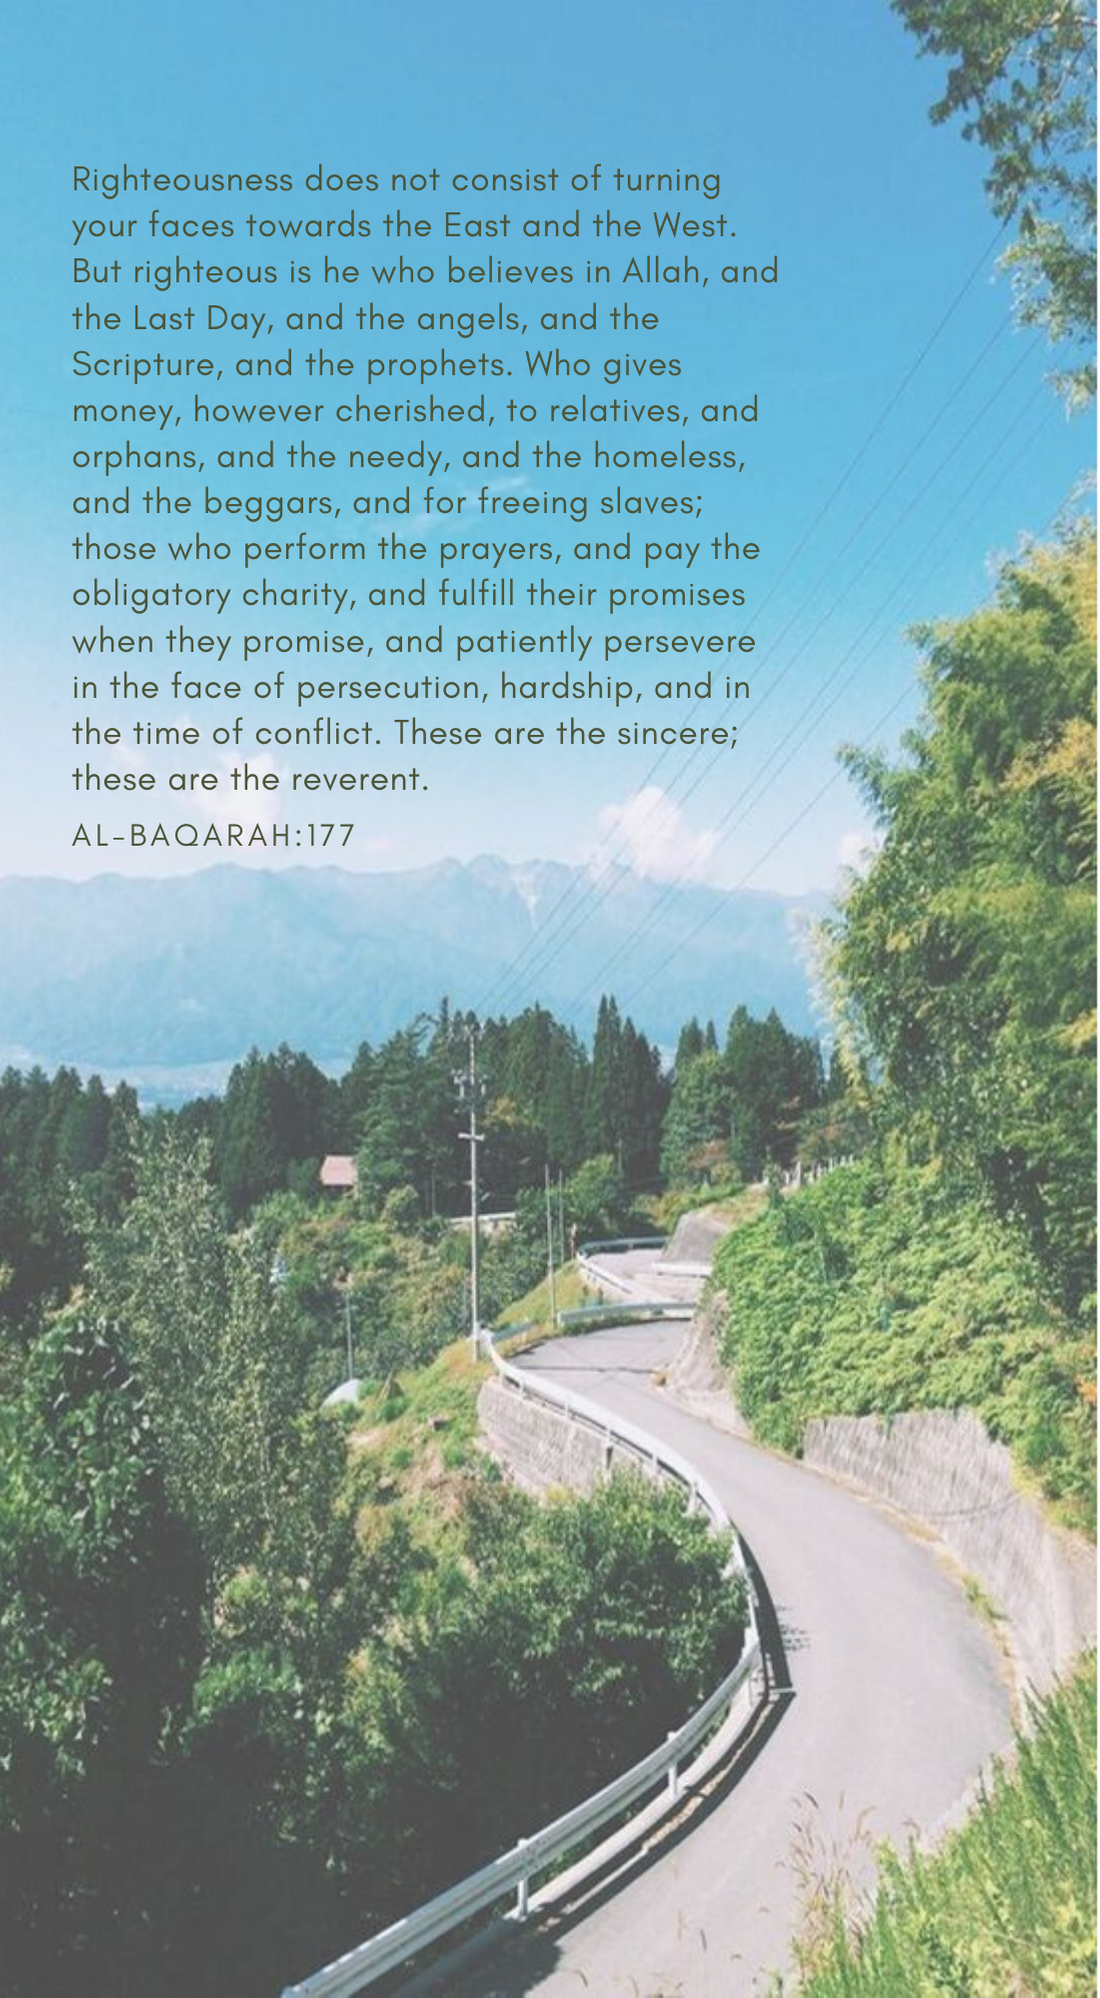 Al Baqarah 177 : baqarah, Surah, Al-Baqarah, Scripture,, Quran,, Righteousness